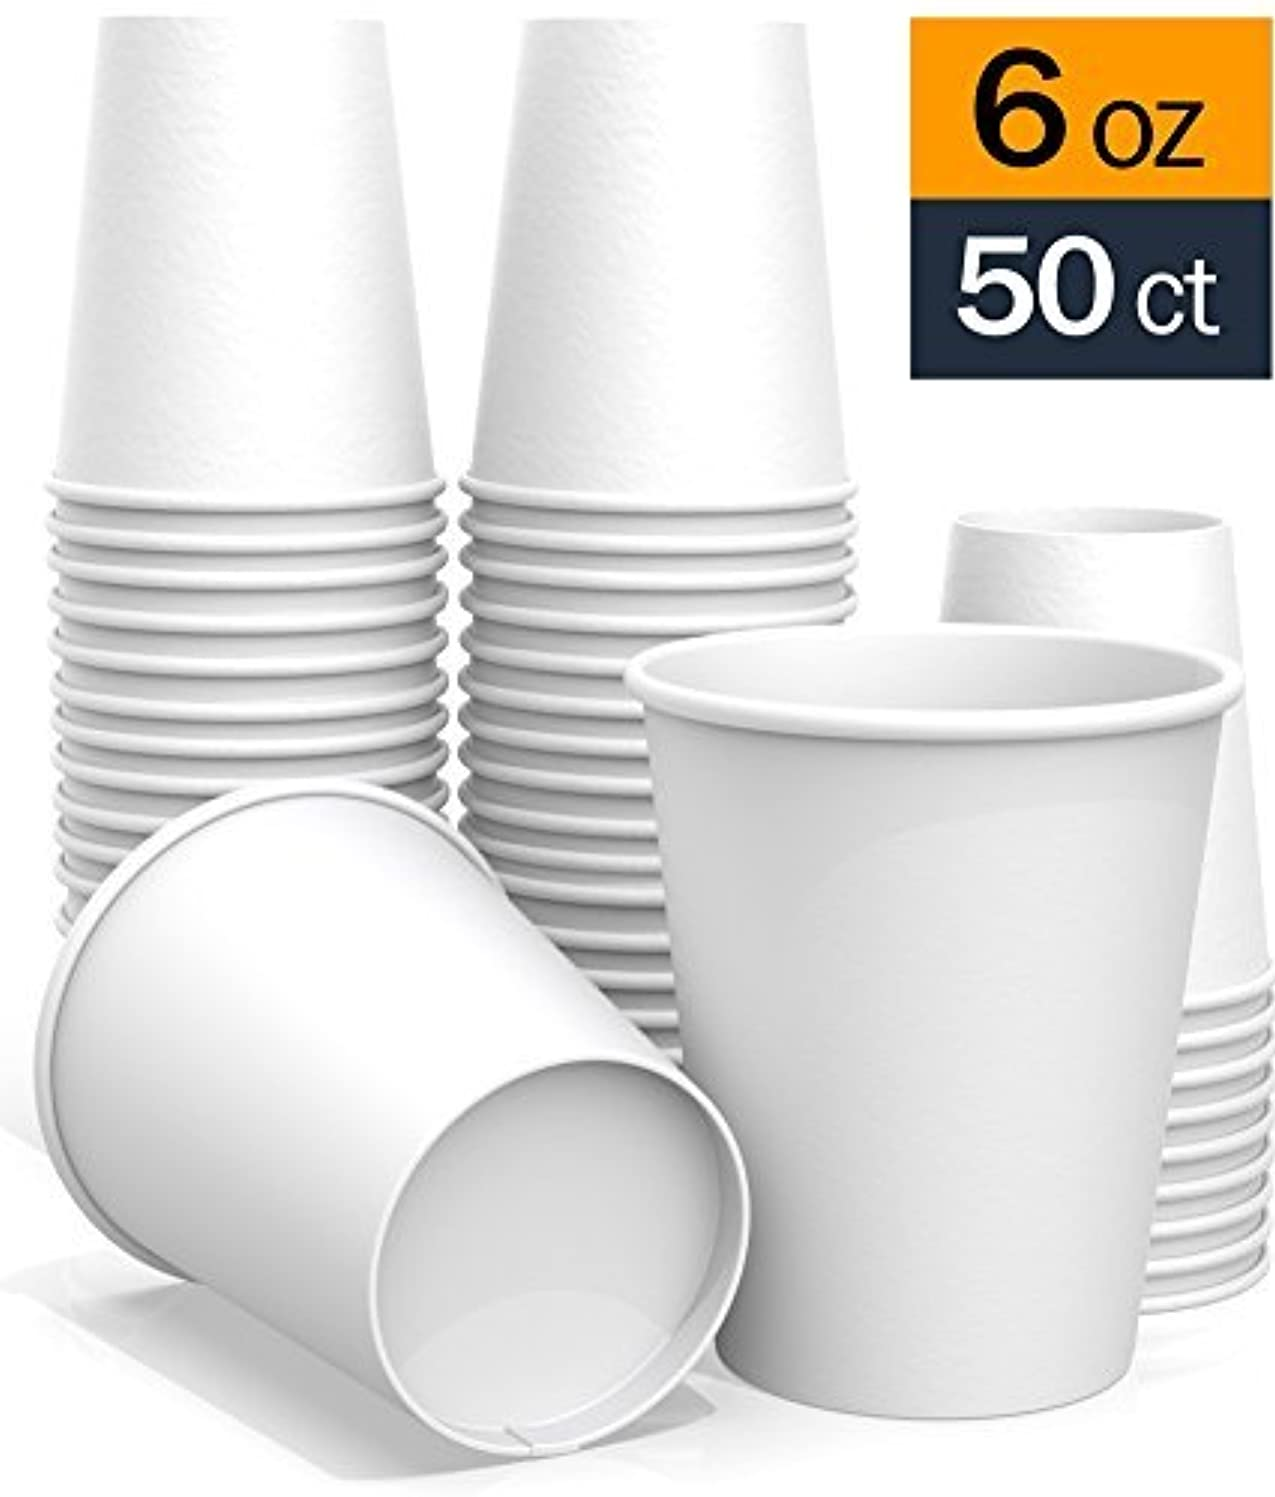 6 oz All-Purpose White Paper Cups (50 ct) - hot Beverage Cup for Coffee Tea Water and cold Drinks - ideal Bath Cup kzgh7634875